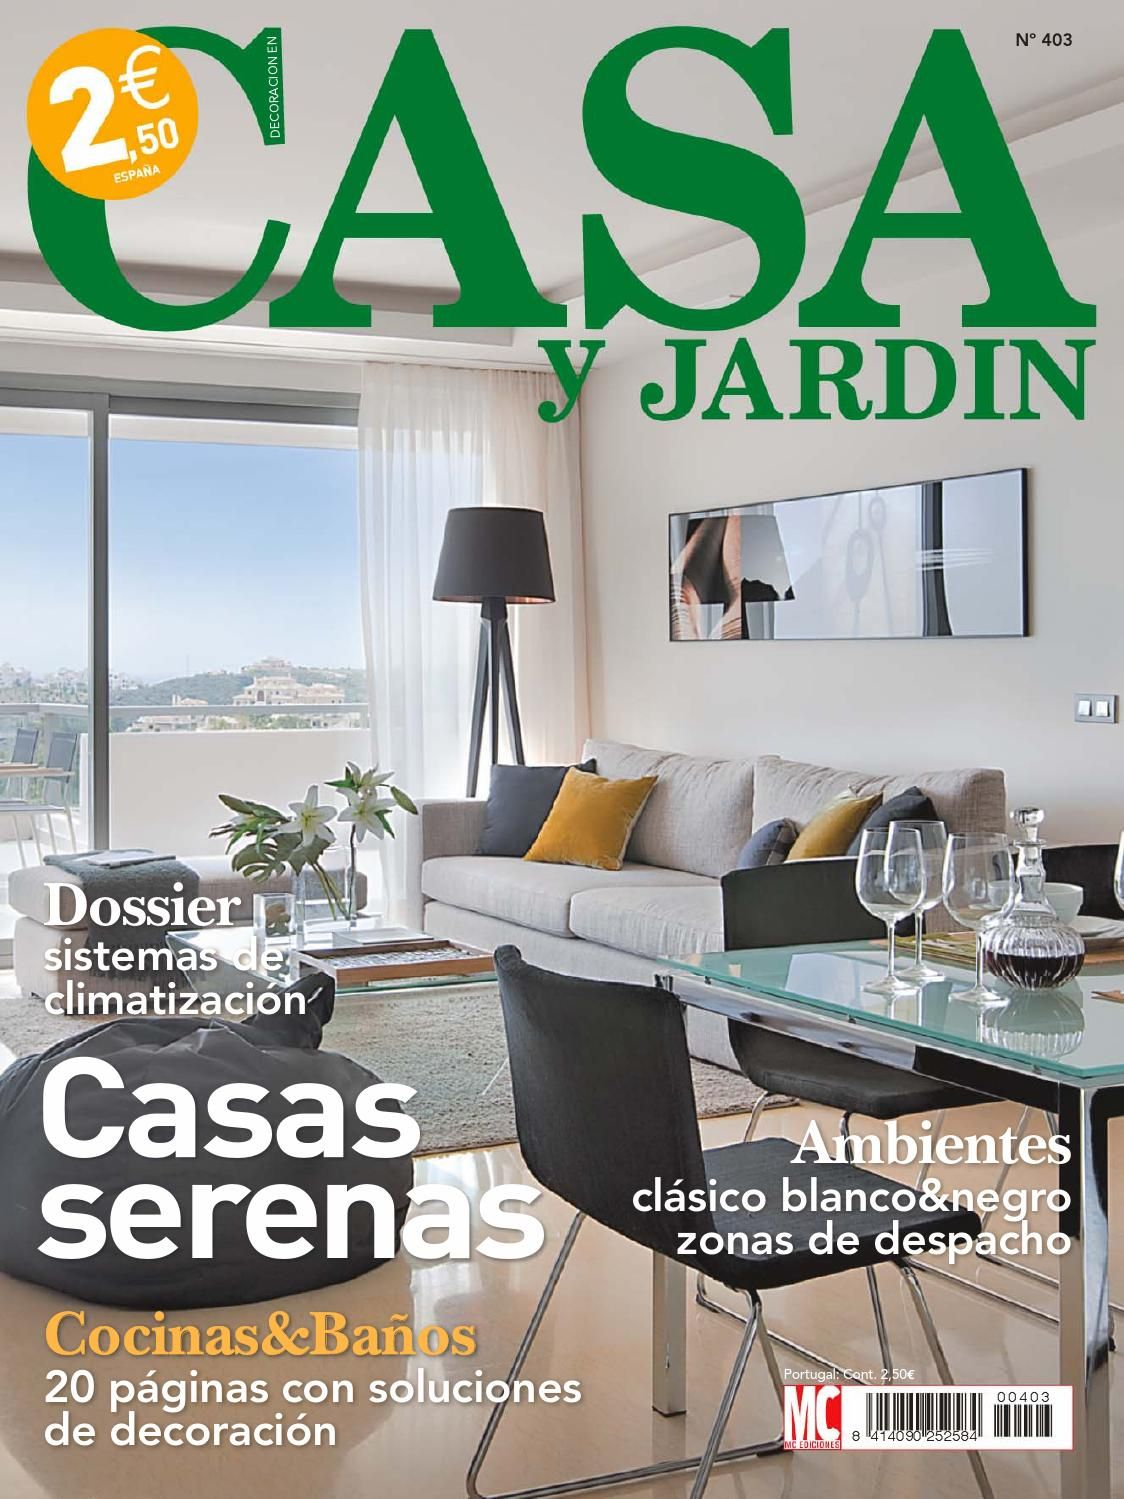 casa y jardin revista de decoracin de interiores